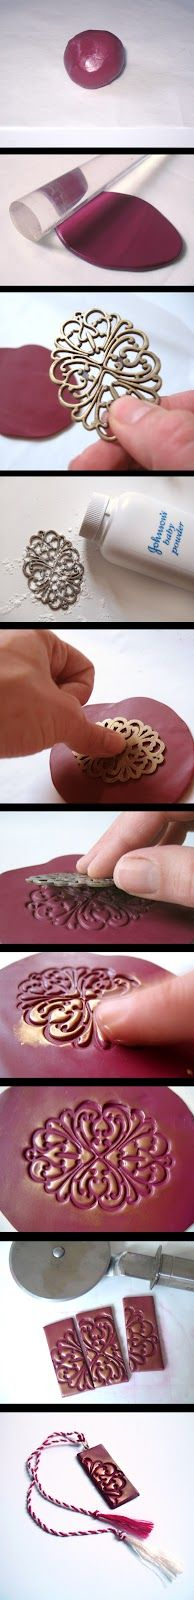 Neat way to make pendents with Fimo clay.